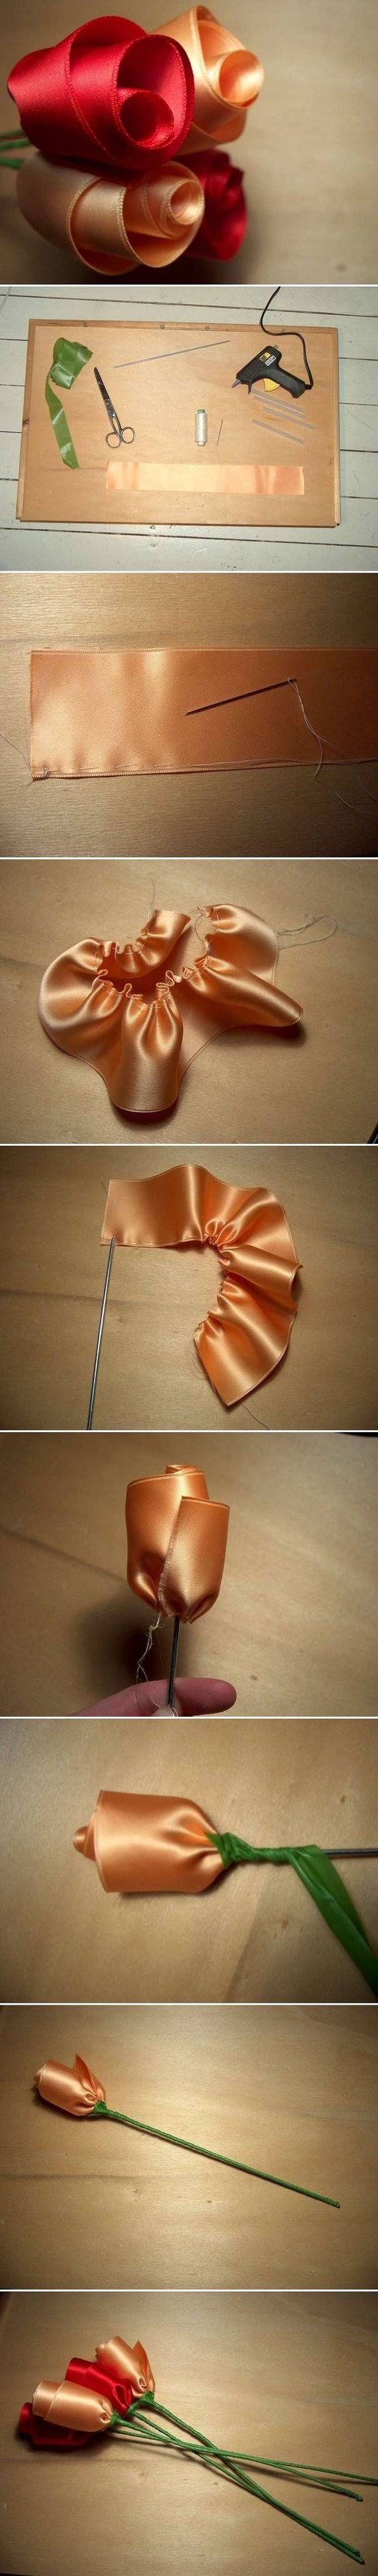 DIY Easy Satin Ribbon Roses | iCreativeIdeas.com LIKE Us on Facebook ==> https://www.facebook.com/icreativeideas: